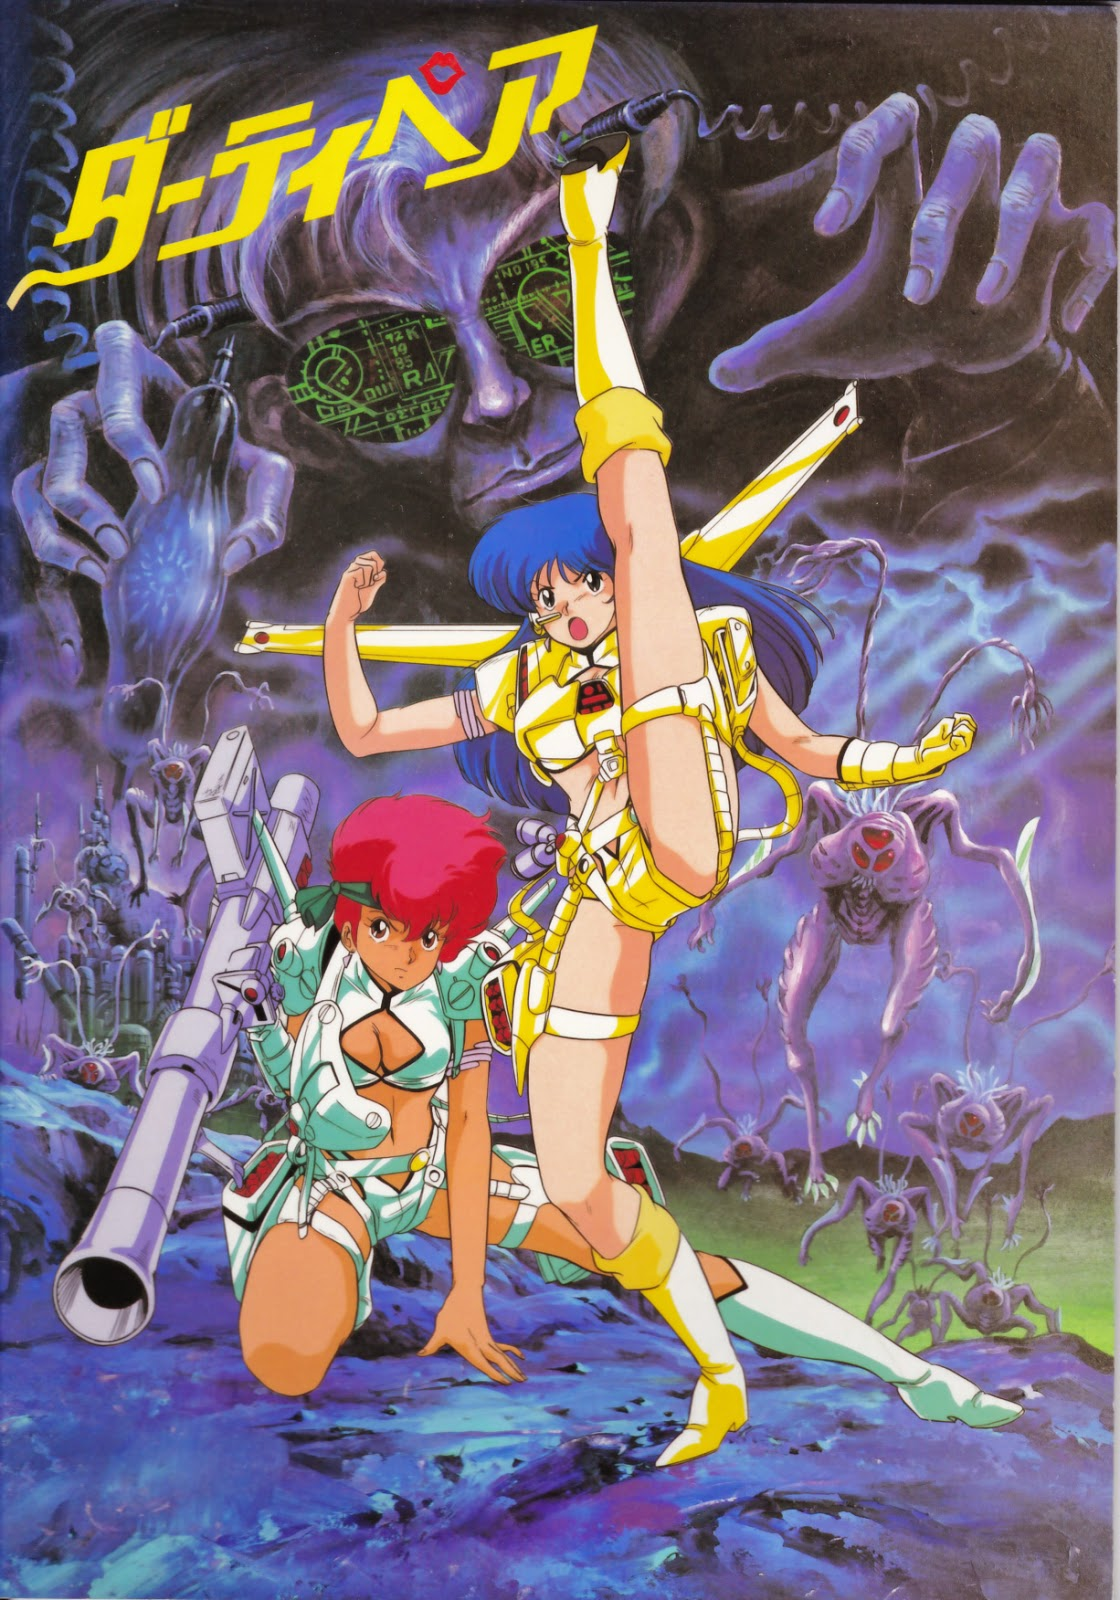 2377_dirty_pair_affair_of_nolandia_4